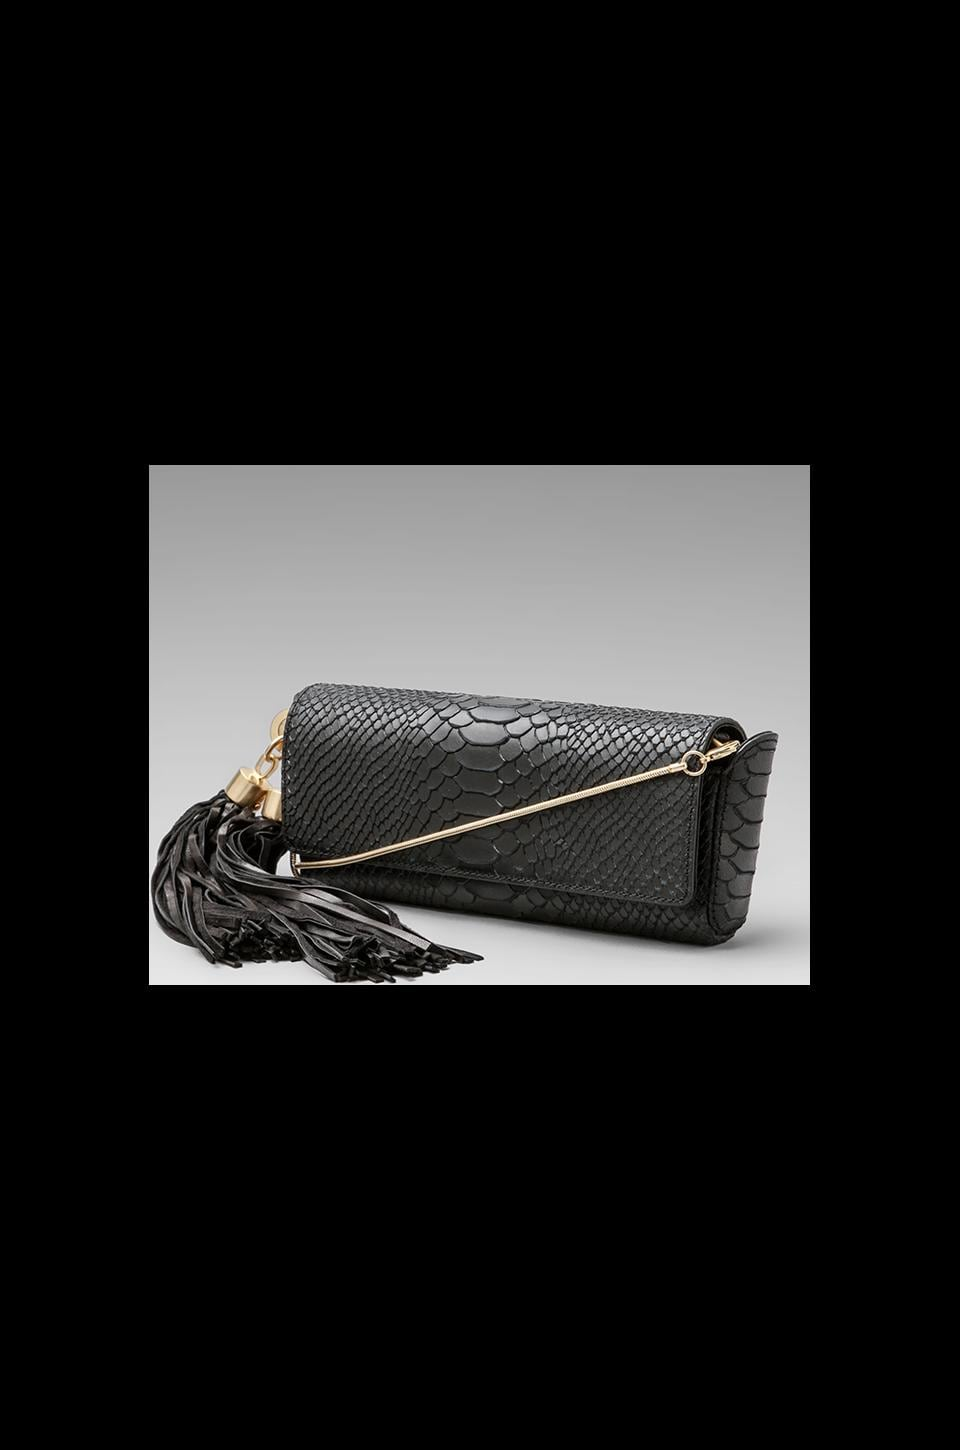 Z Spoke by Zac Posen Claudette Dry Python Long Tassel Clutch in Black